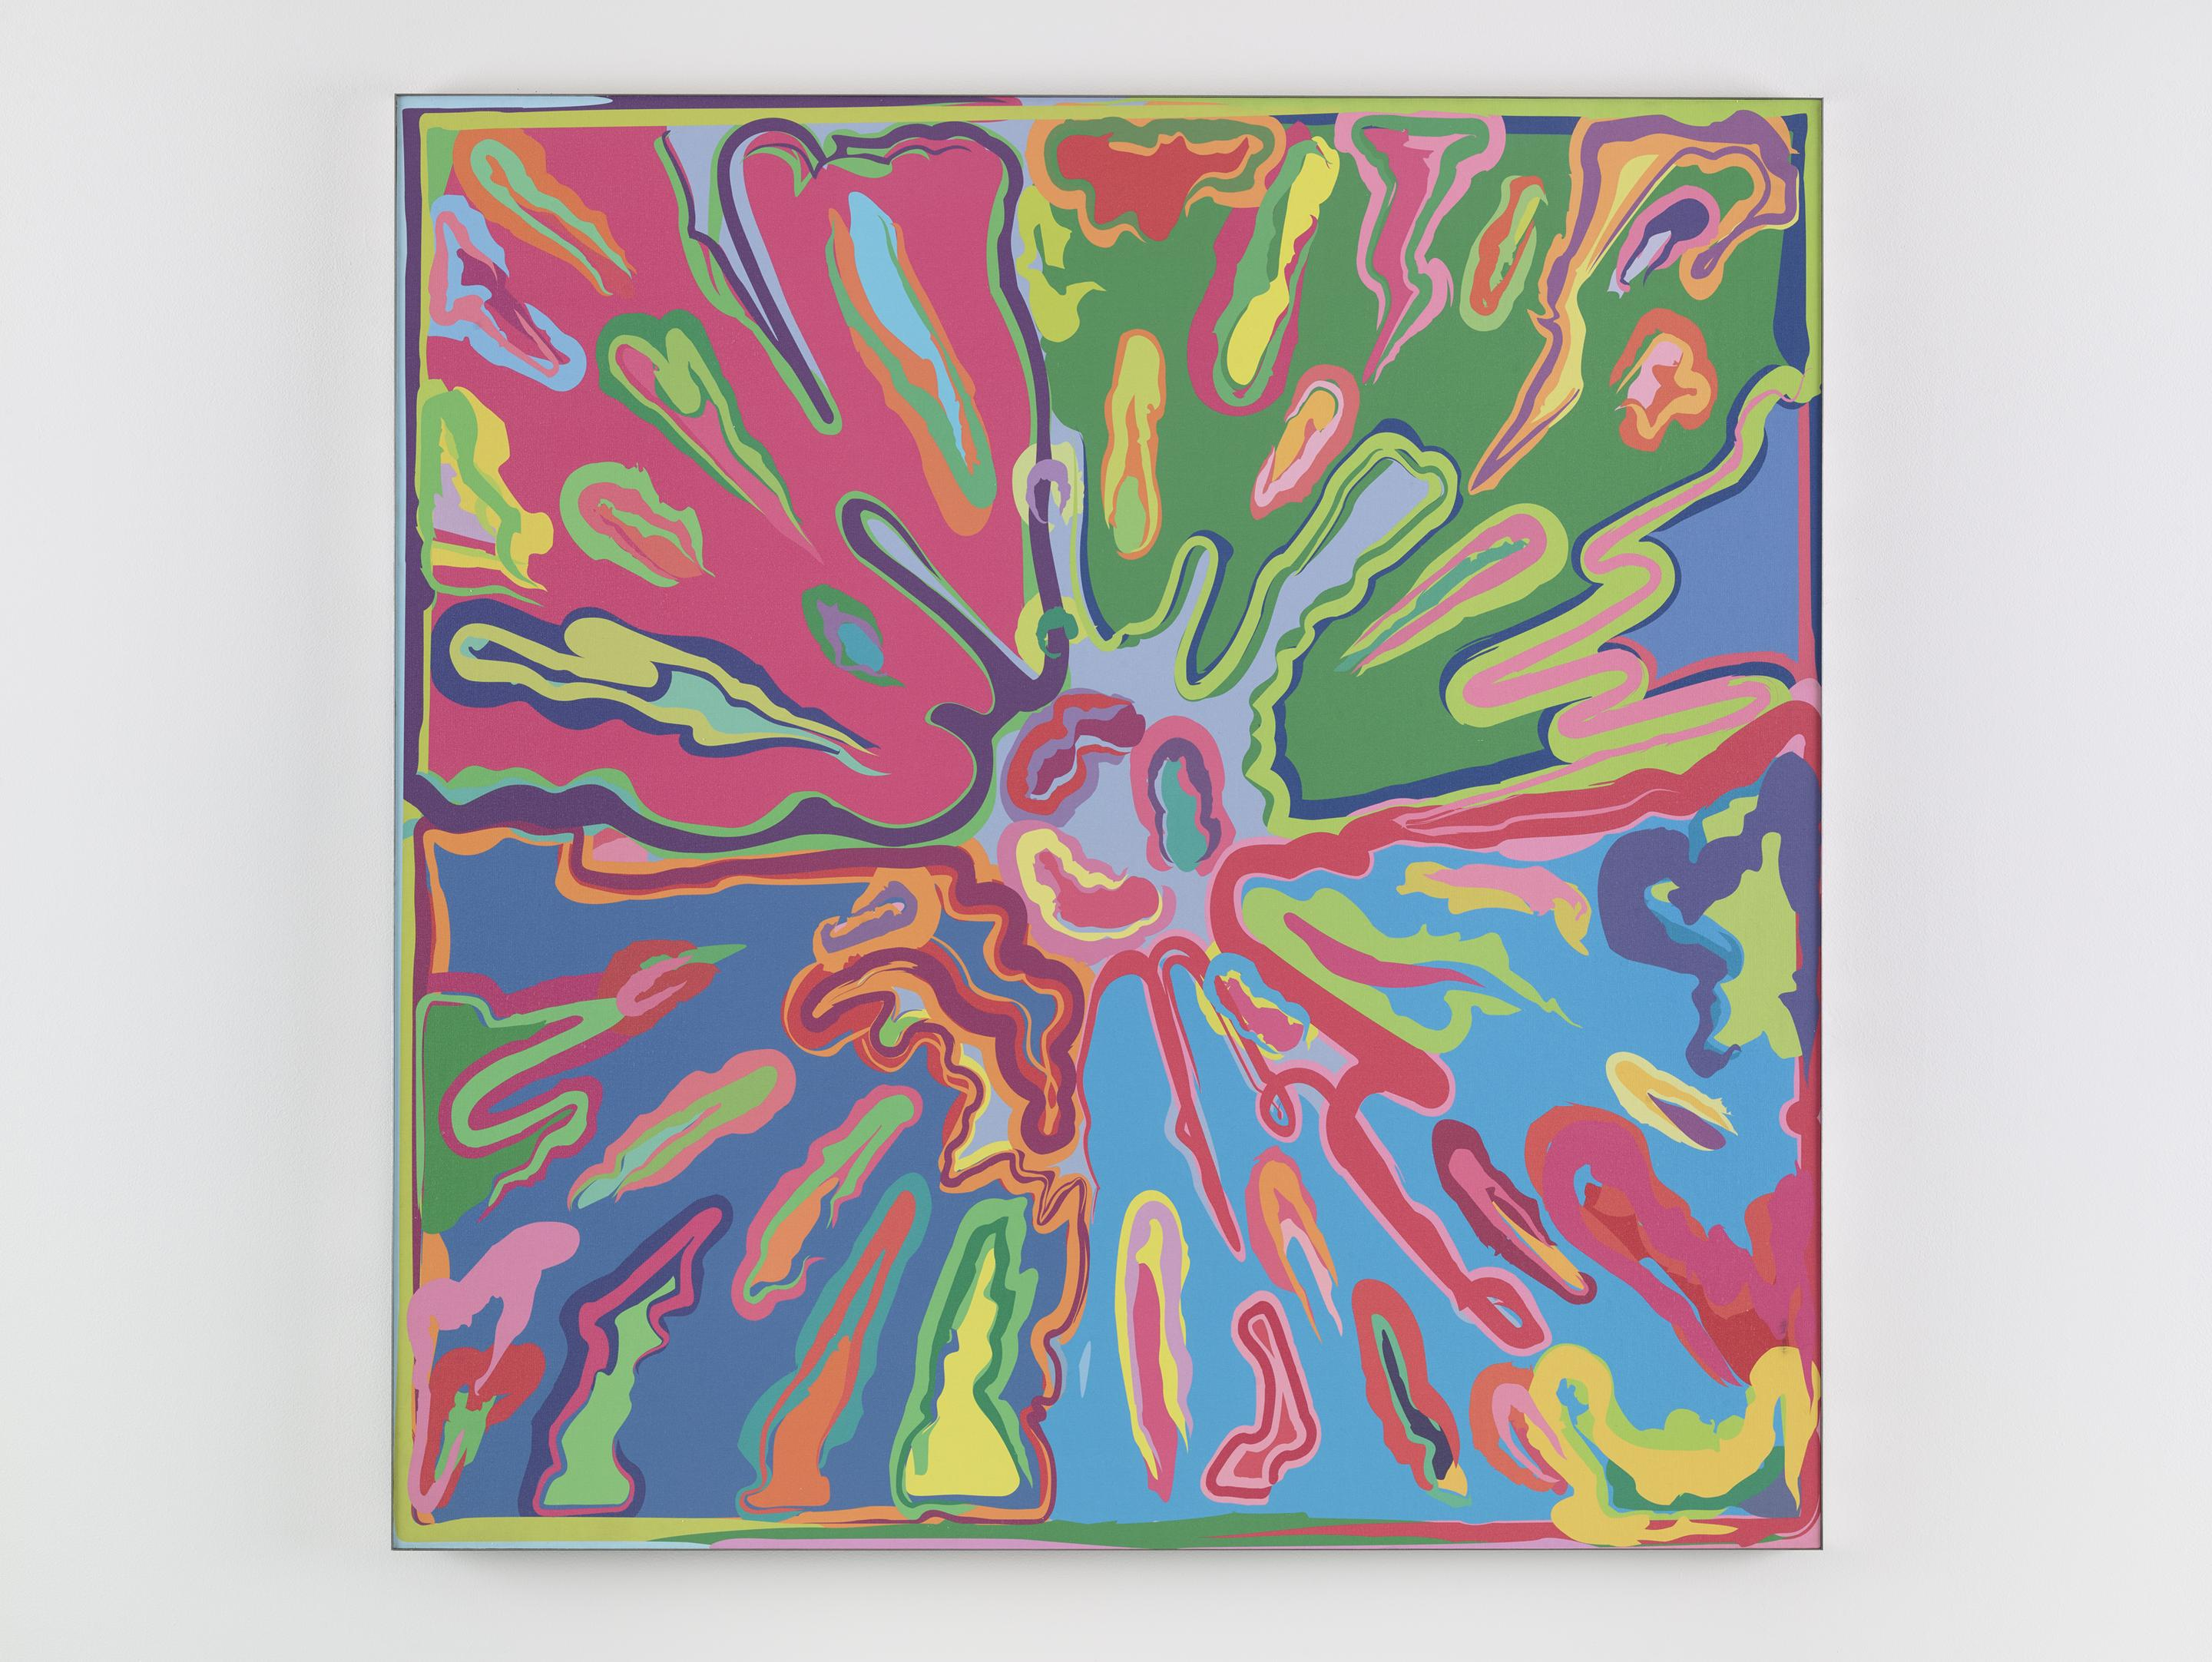 PETER HALLEY Explosion #9 (Prototype), 2015 Screenprint monotype on canvas, mounted to aluminum Dibond, in metal frame 42 x 42 inches #9 from a series of 12 unique variants SGI3208